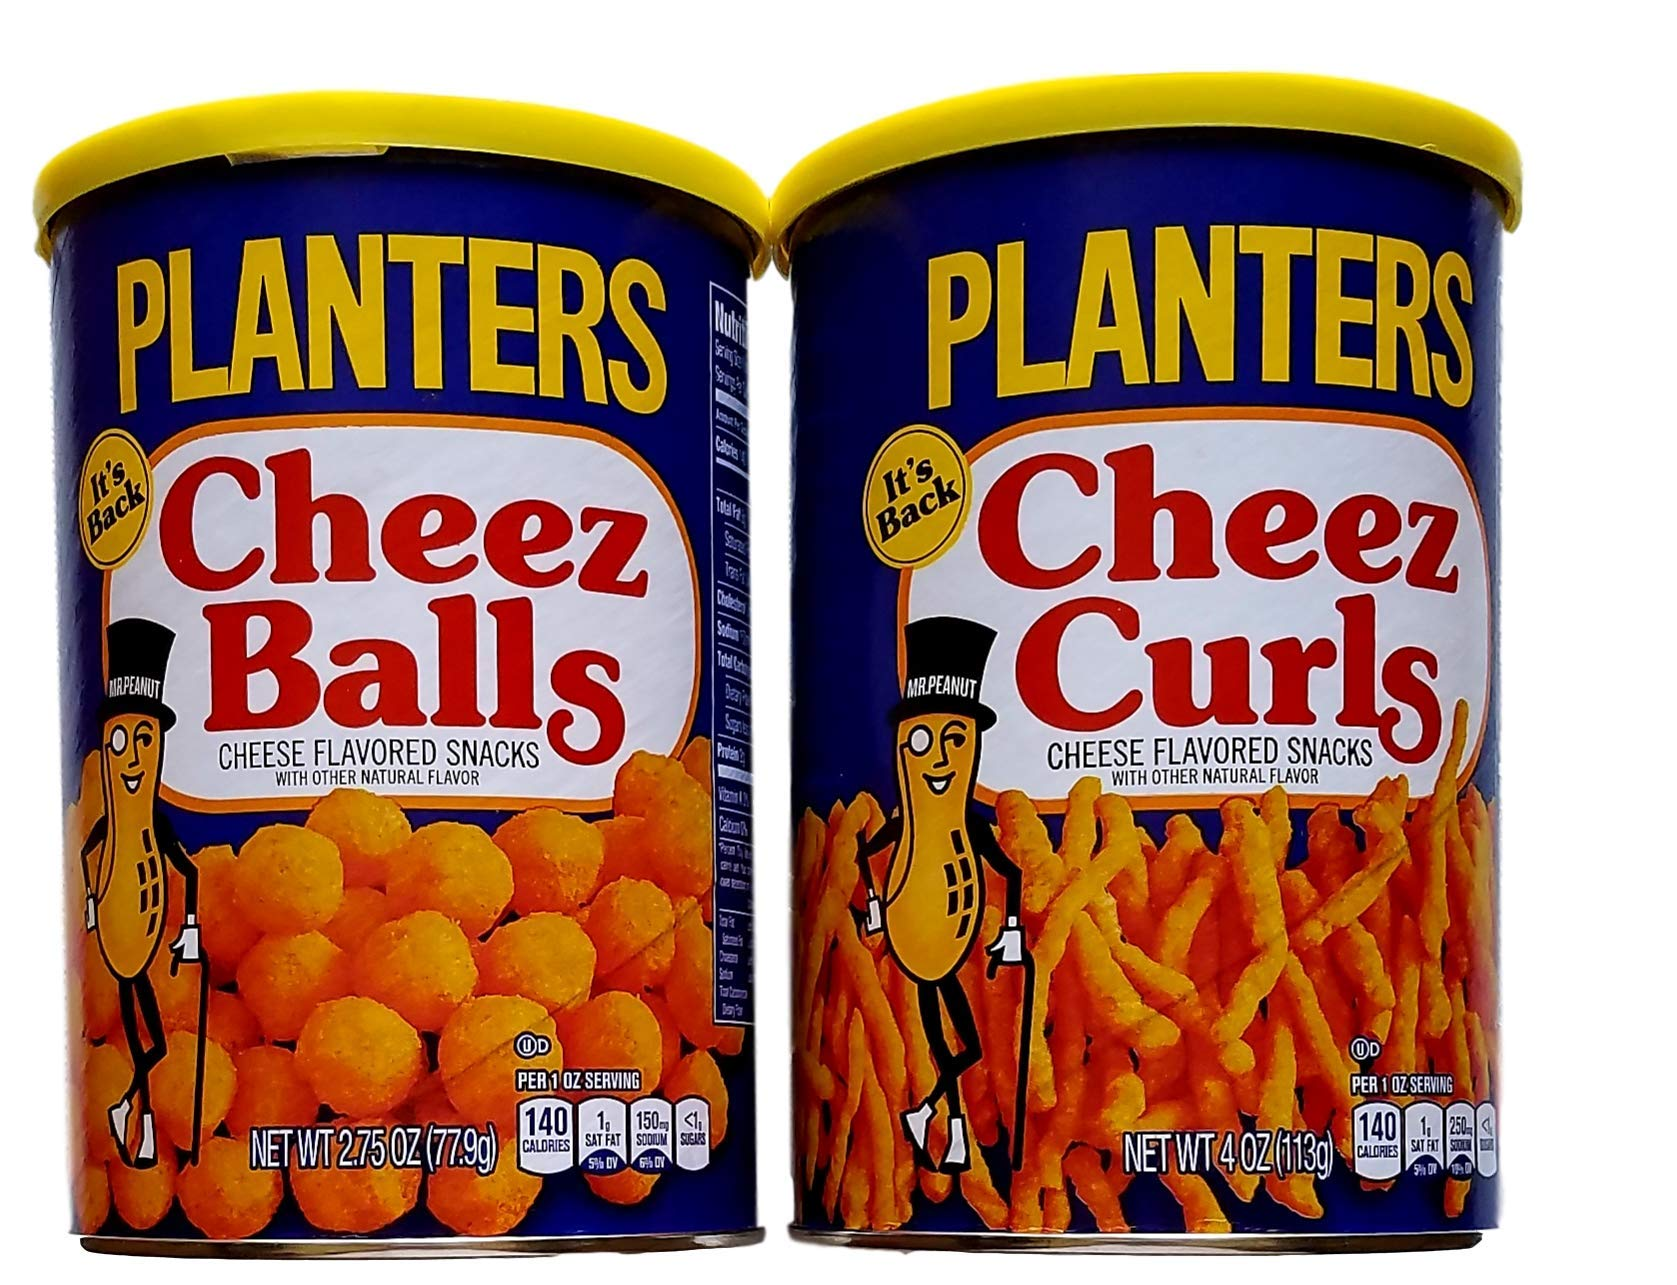 Cheez Balls 2.75 Oz & Cheez Curls 4 Oz - Planters Variety Bundle of 2 by PLANTERS